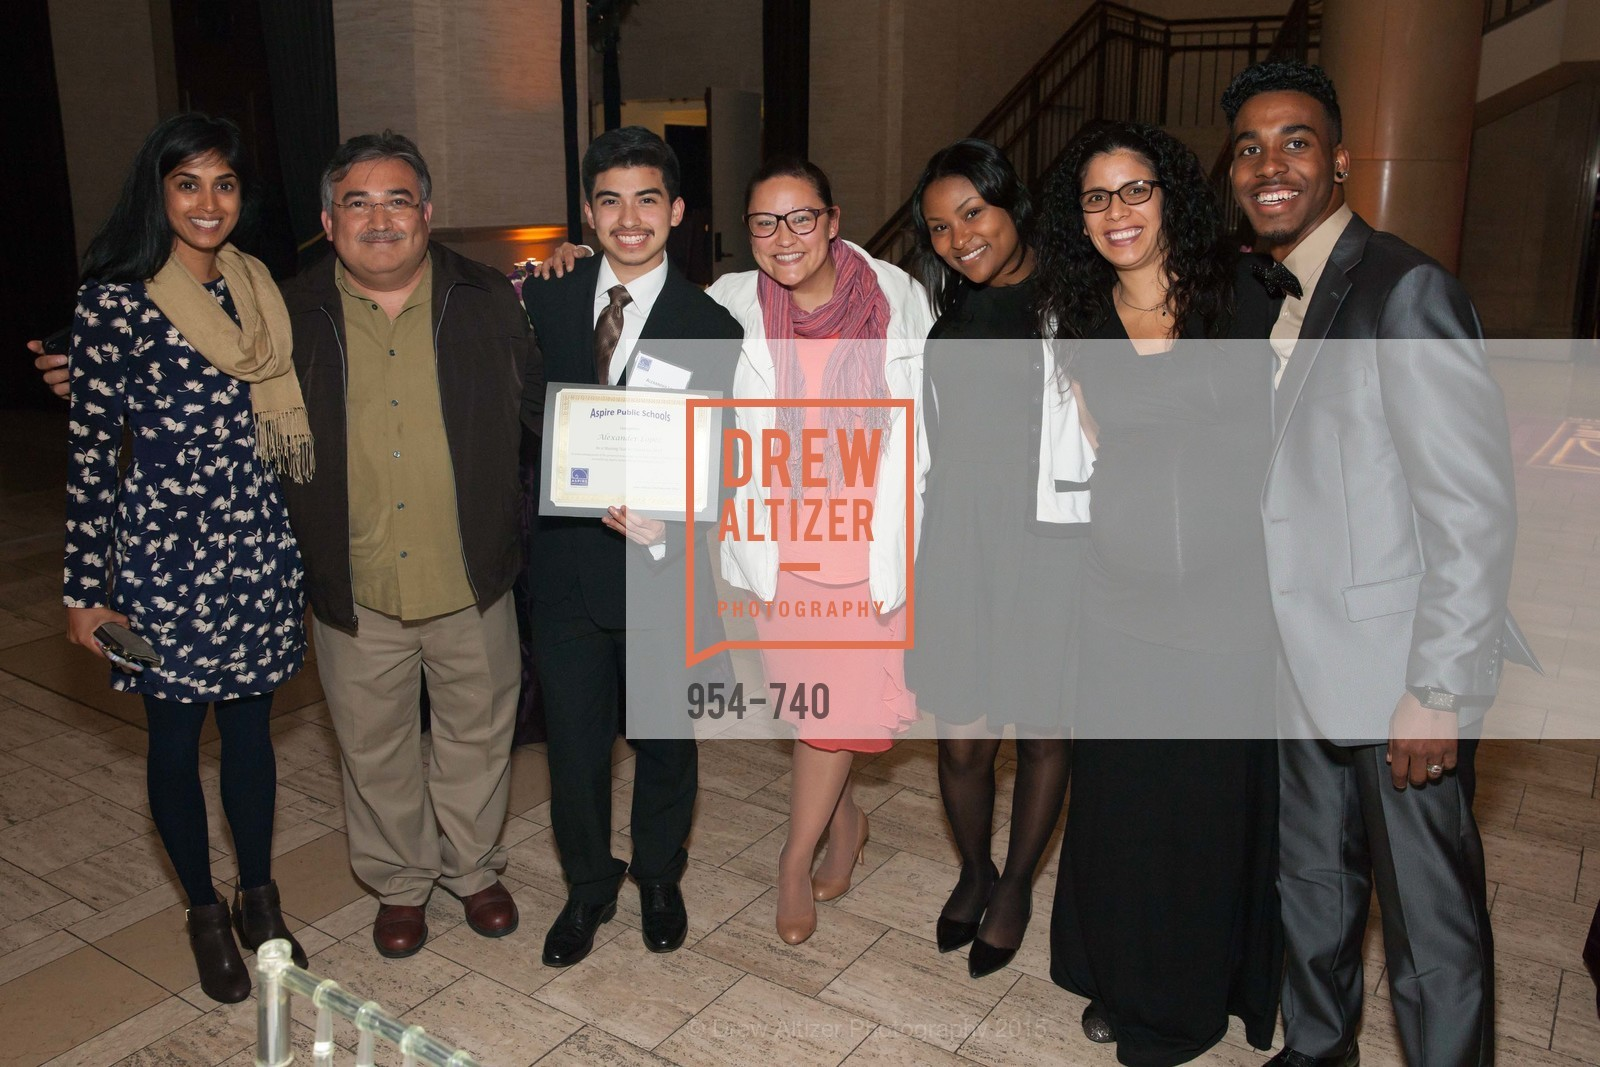 Minnie Setty, Alexander Lopez, Tatiana Lim, Arlena Ford, Sarah Salazar, Xavier Taylor, Aspire Annual College for Certain Dinne, US, May 21st, 2015,Drew Altizer, Drew Altizer Photography, full-service agency, private events, San Francisco photographer, photographer california